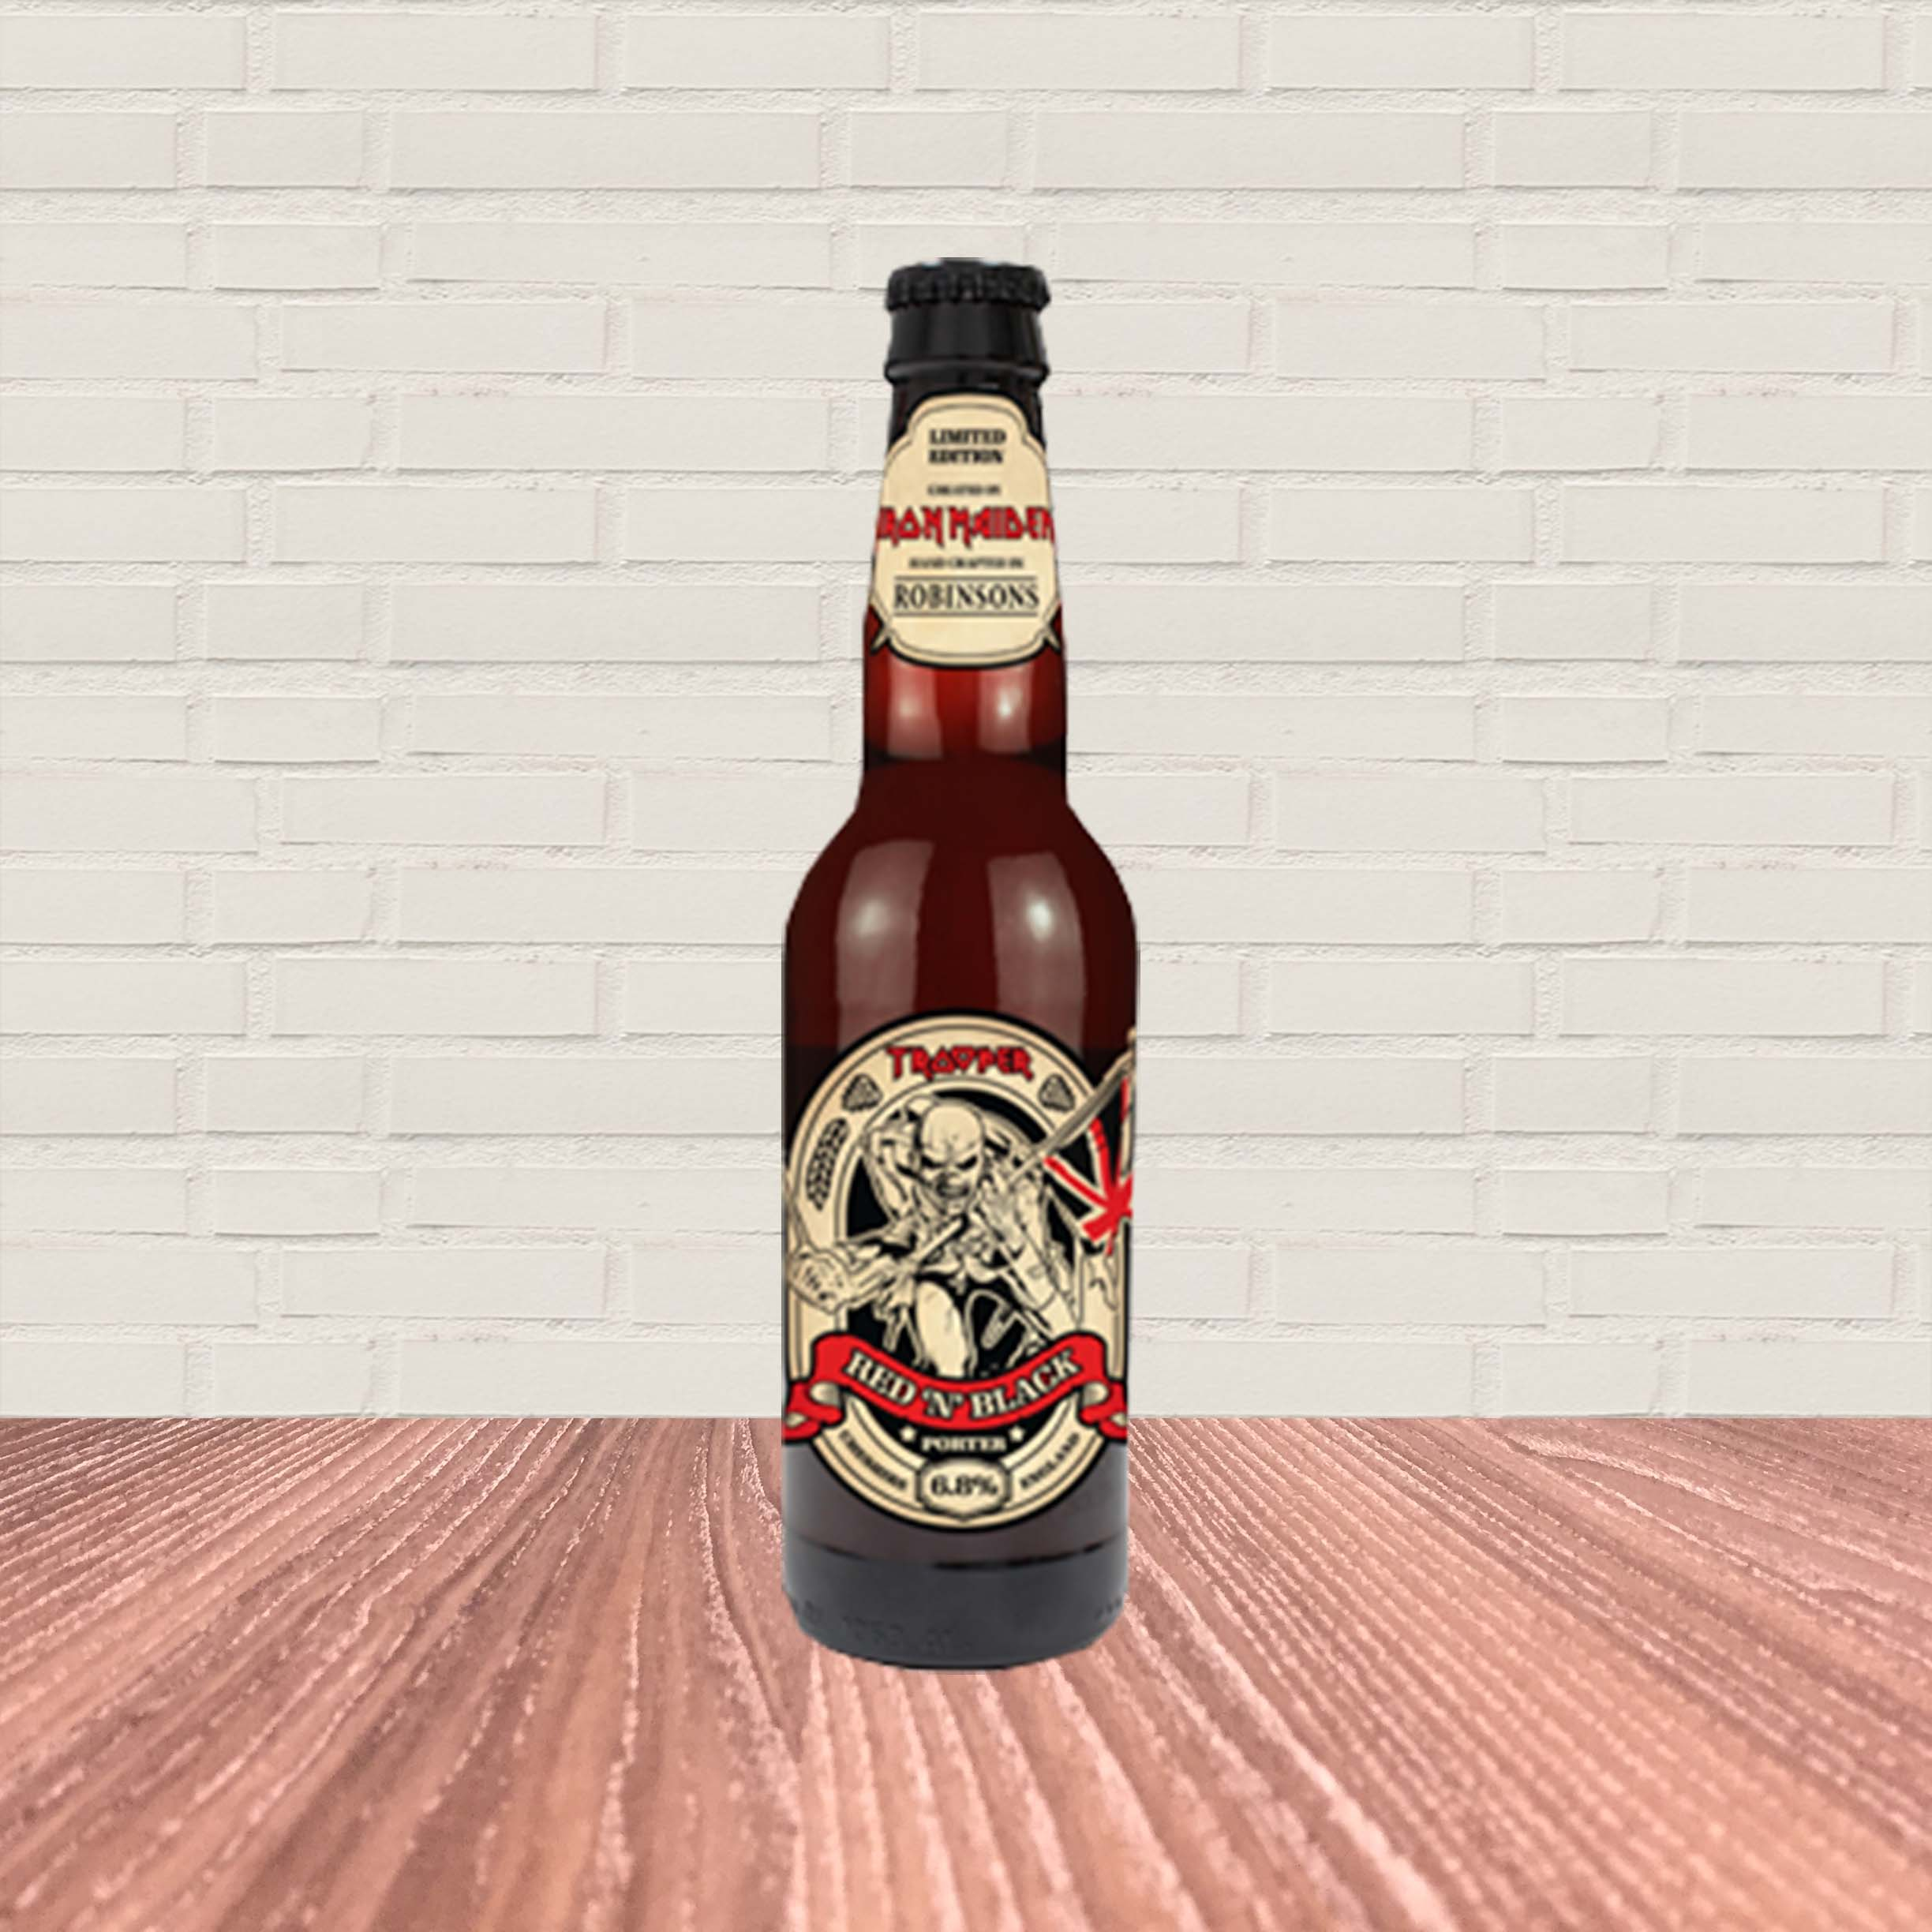 Red 'N' Black by Robinsons Brewery